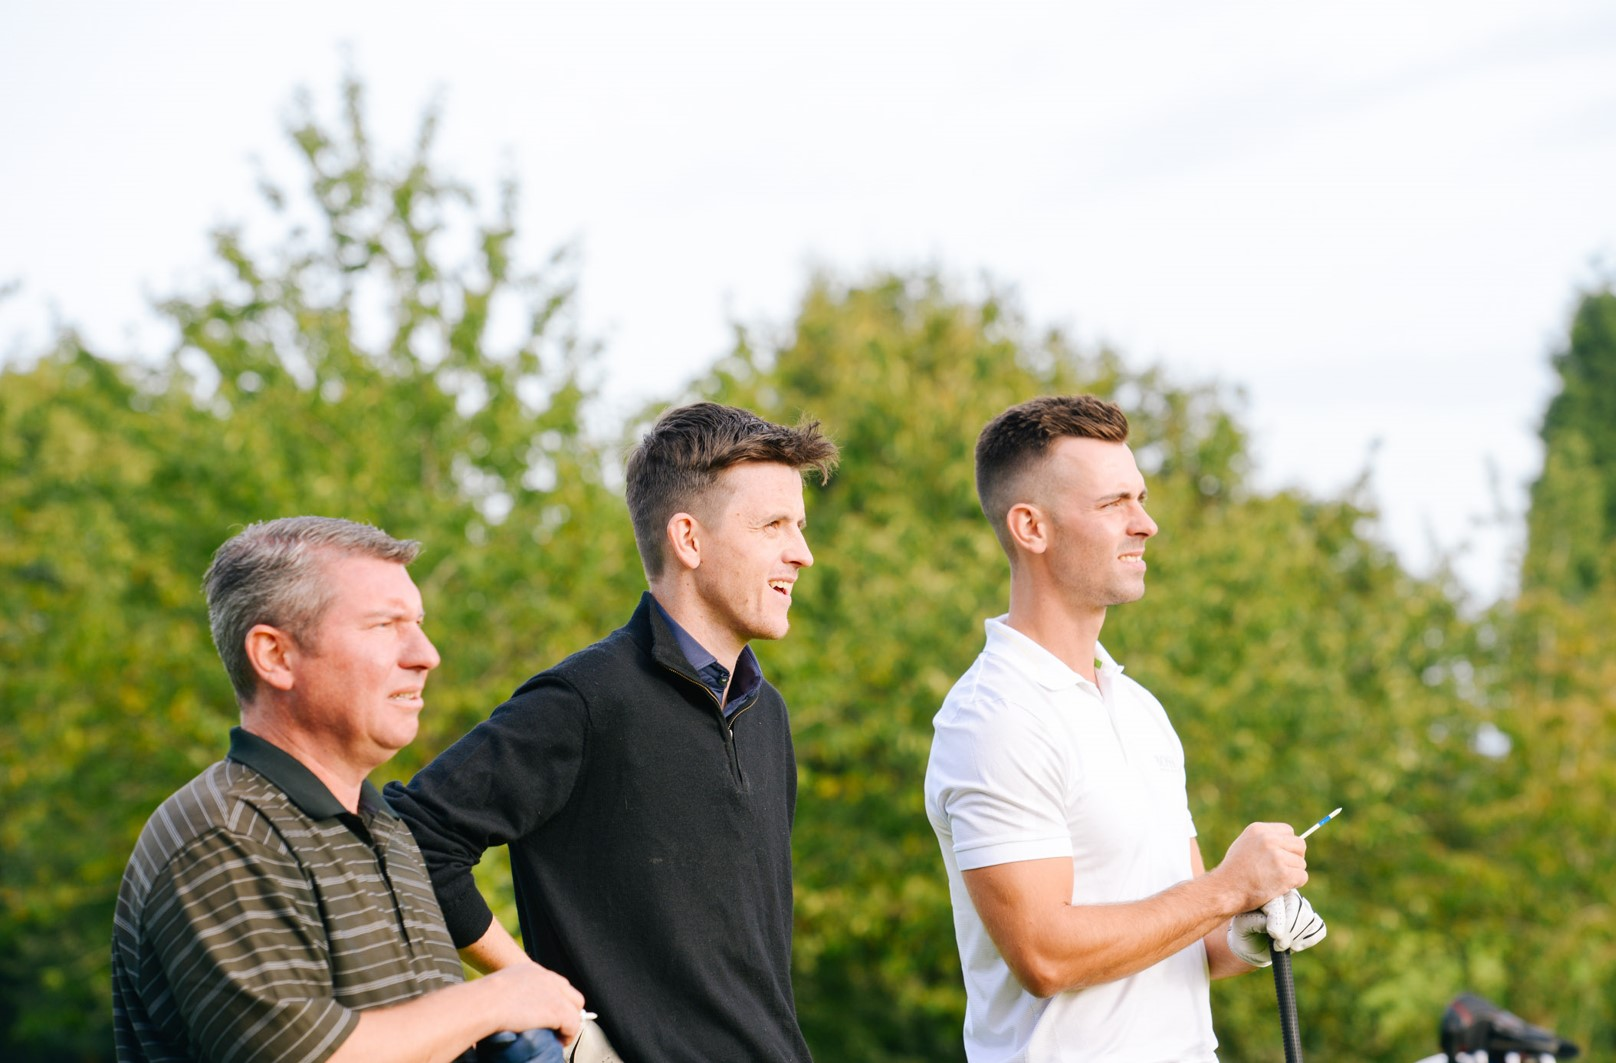 Three golf players assessing their game